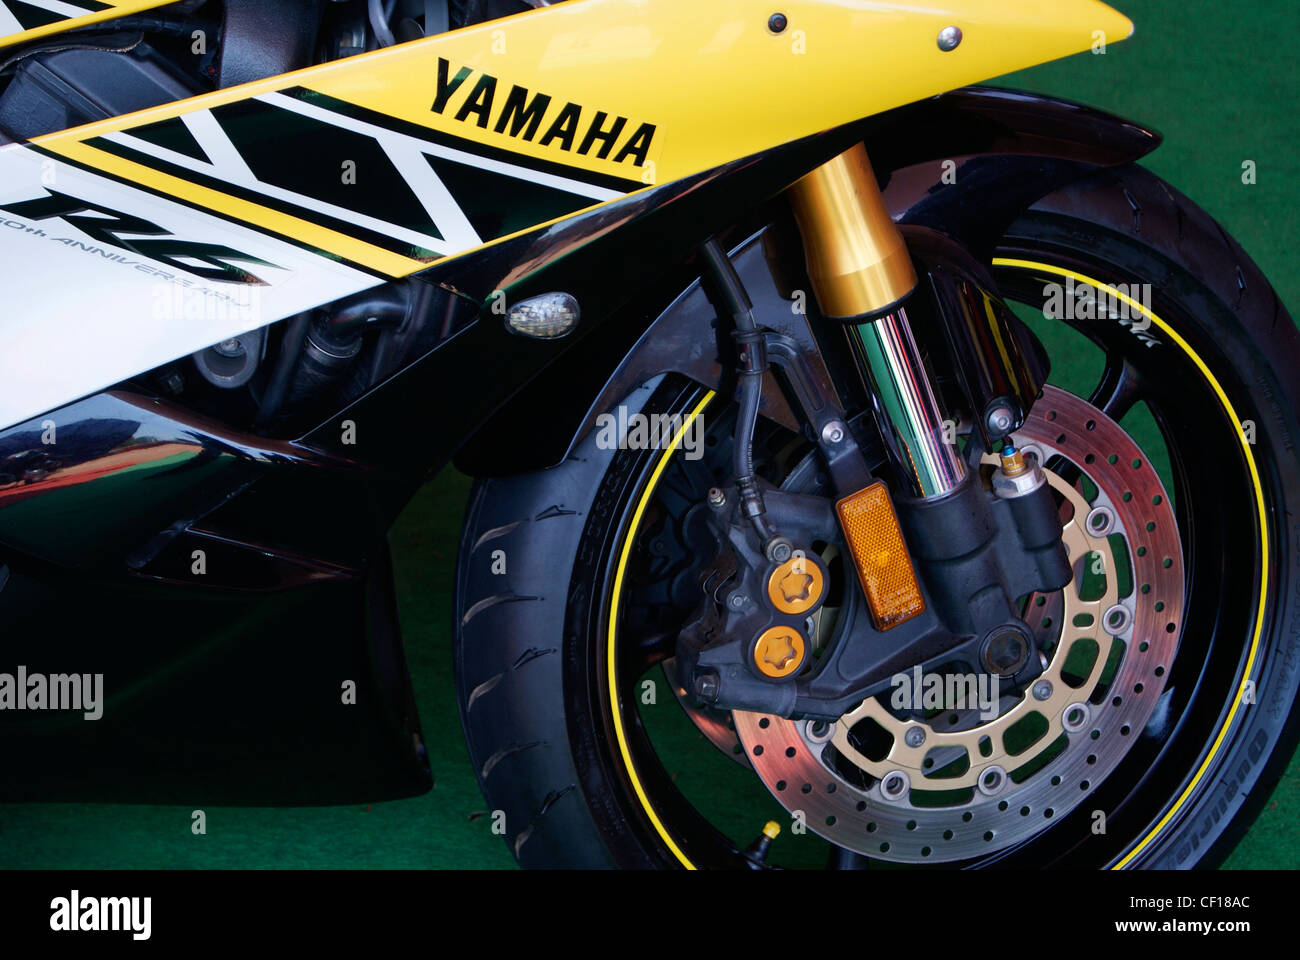 Closeup front side View of Stylish Yamaha R6 Racing bike - Stock Image